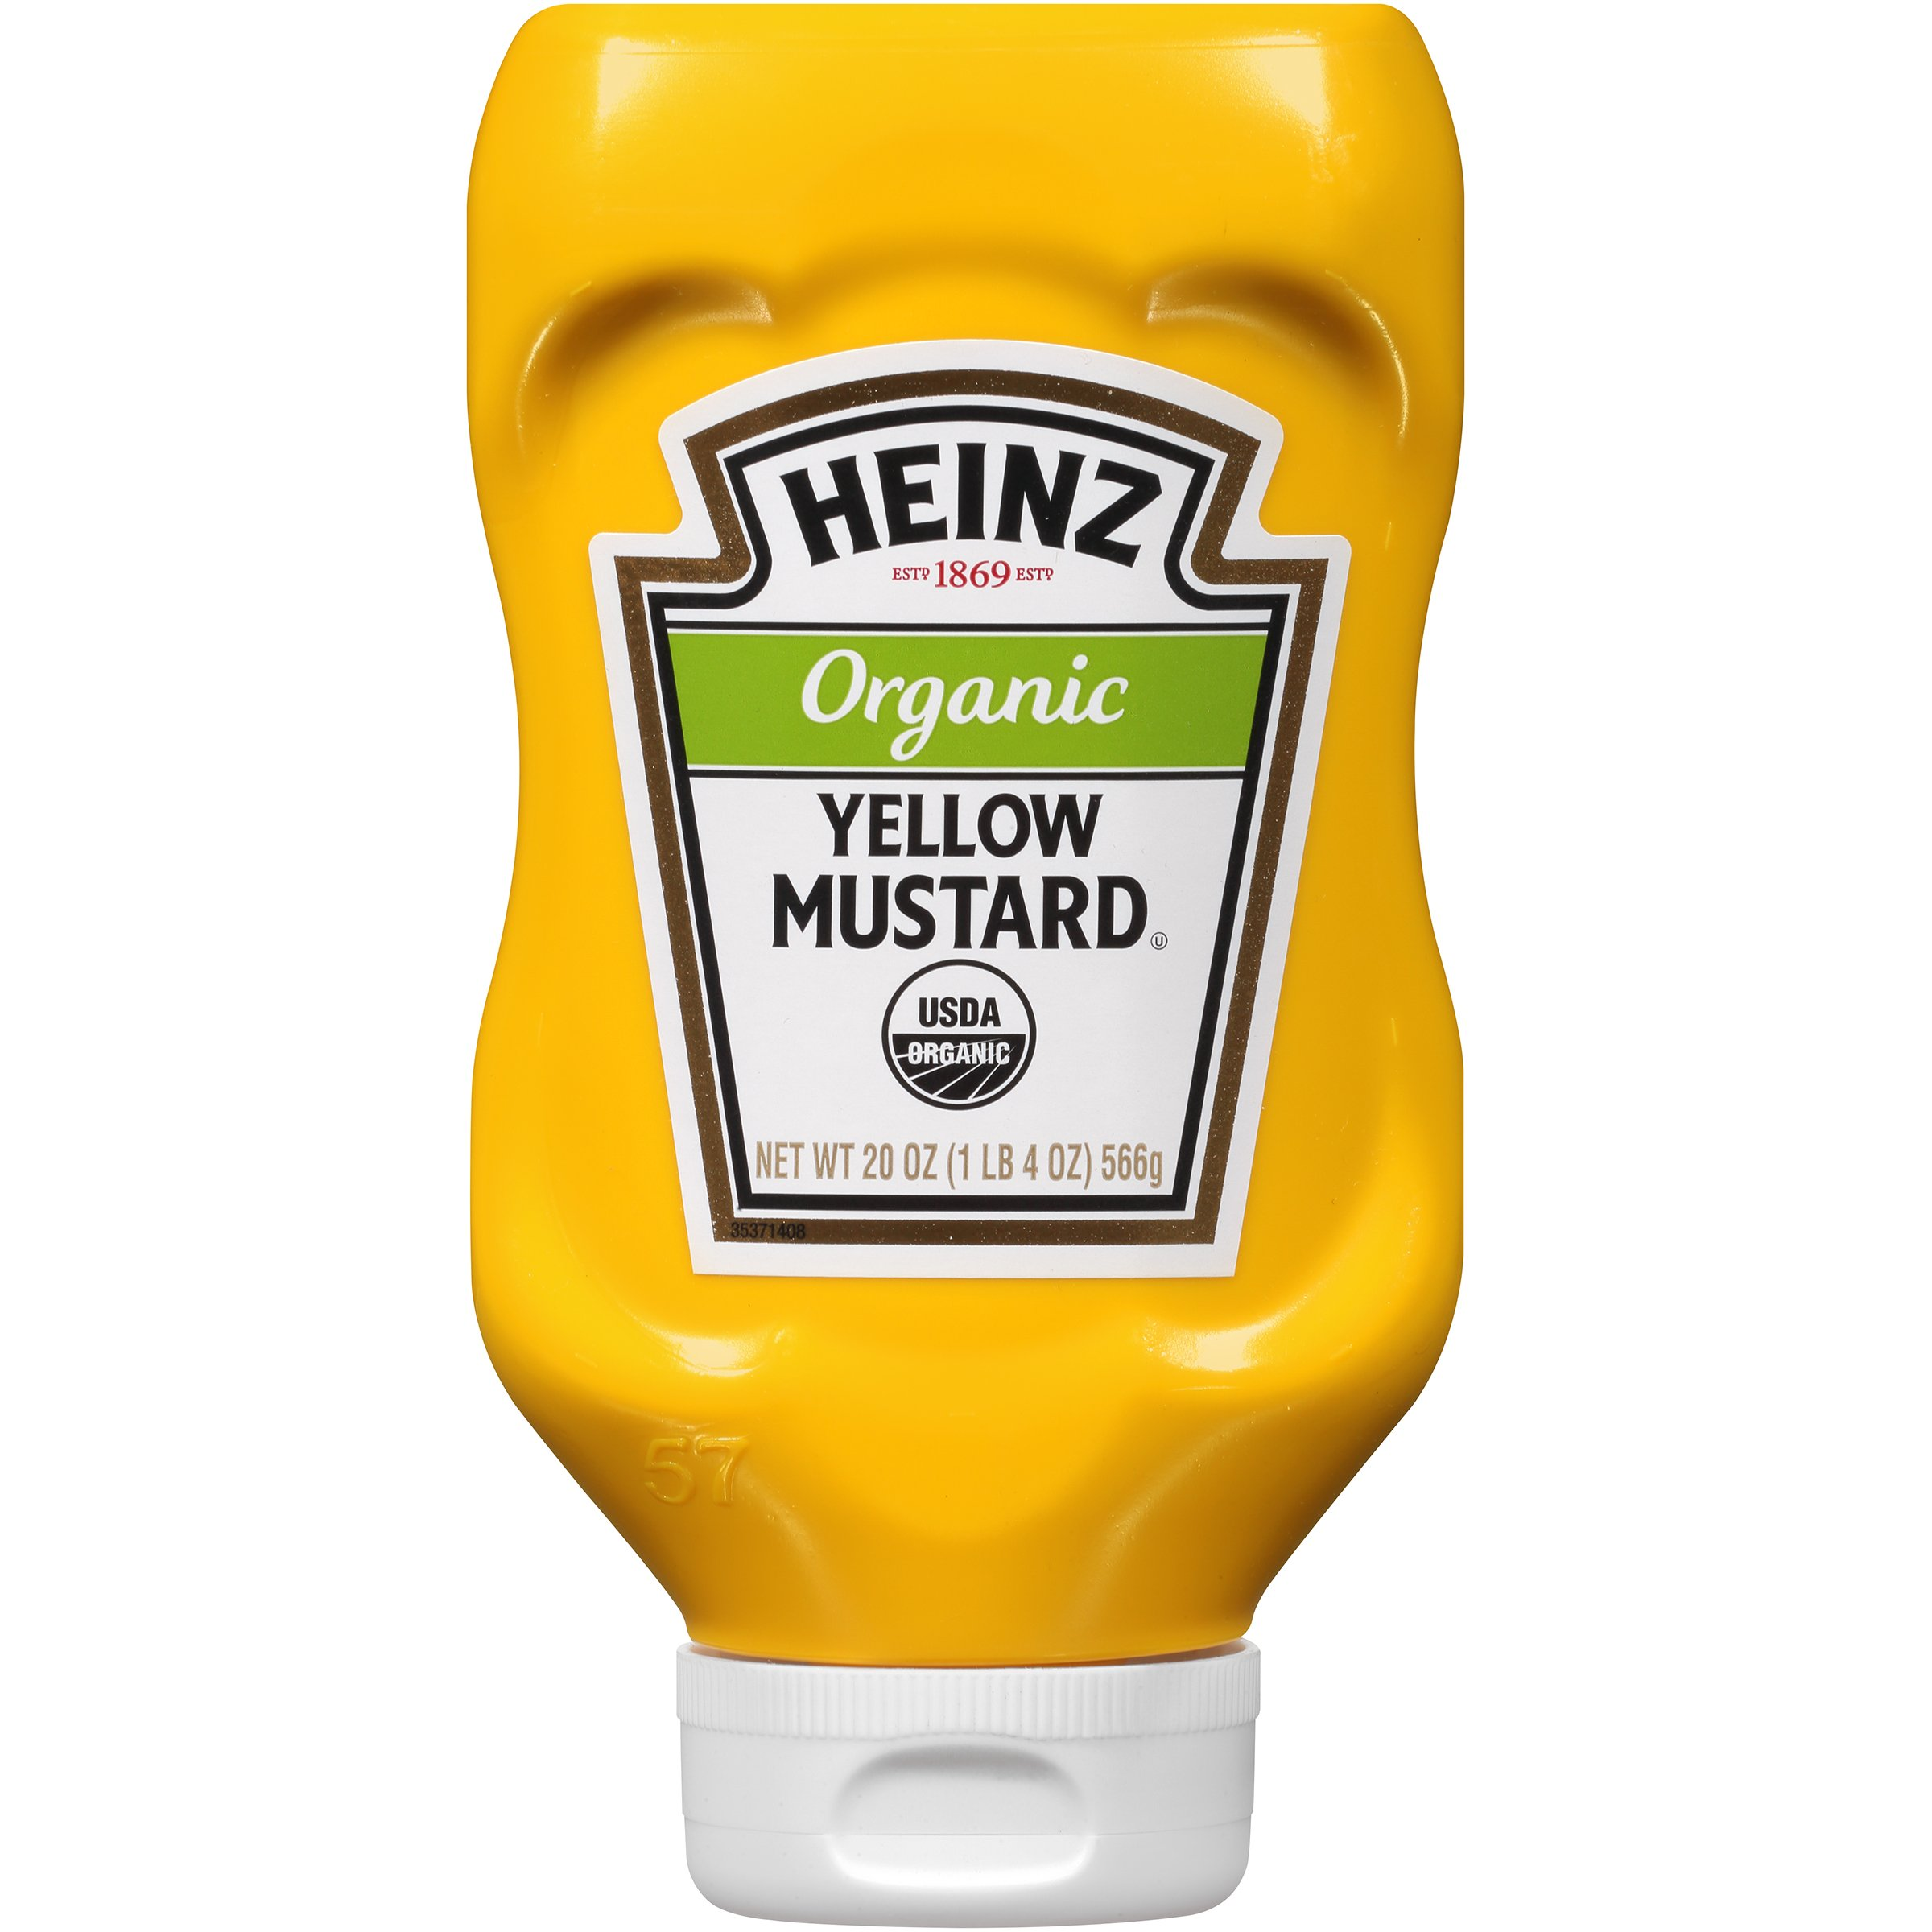 Heinz Organic Yellow Mustard, 20 ounce Easy Squeeze Bottle(Pack of 6)